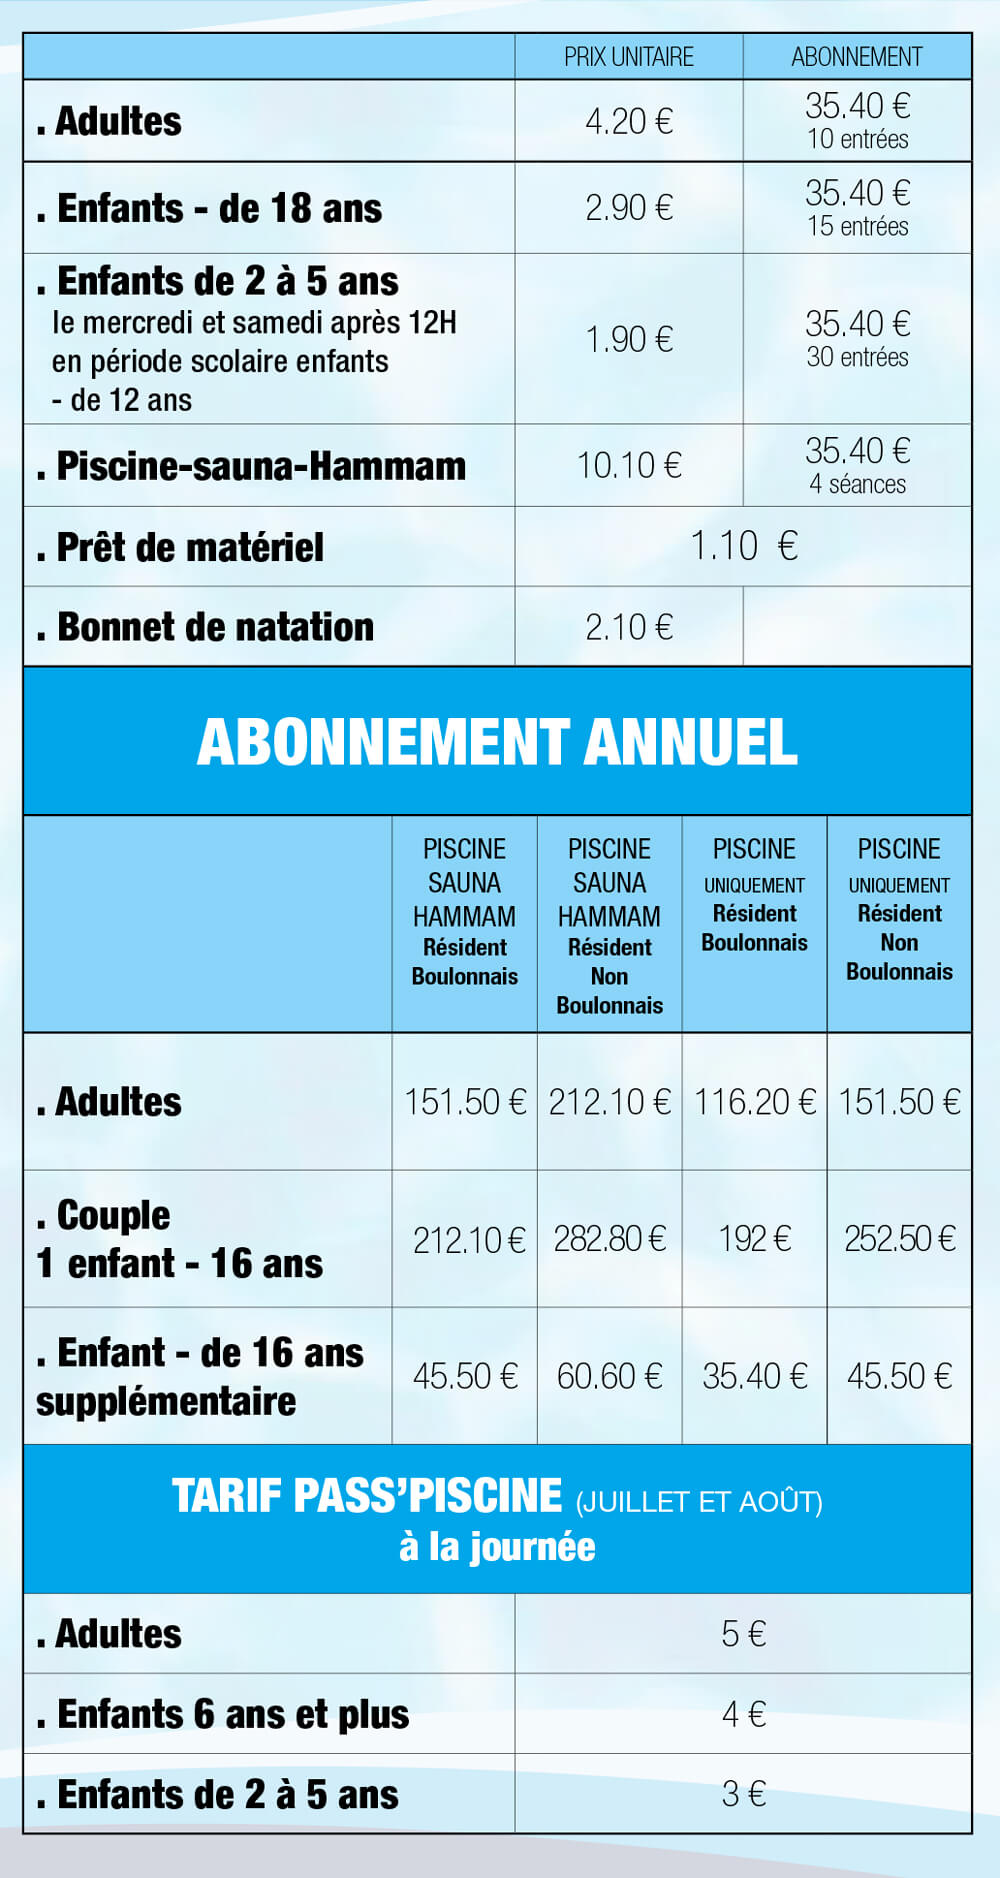 Piscine de nausic a for Horaire piscine boulogne